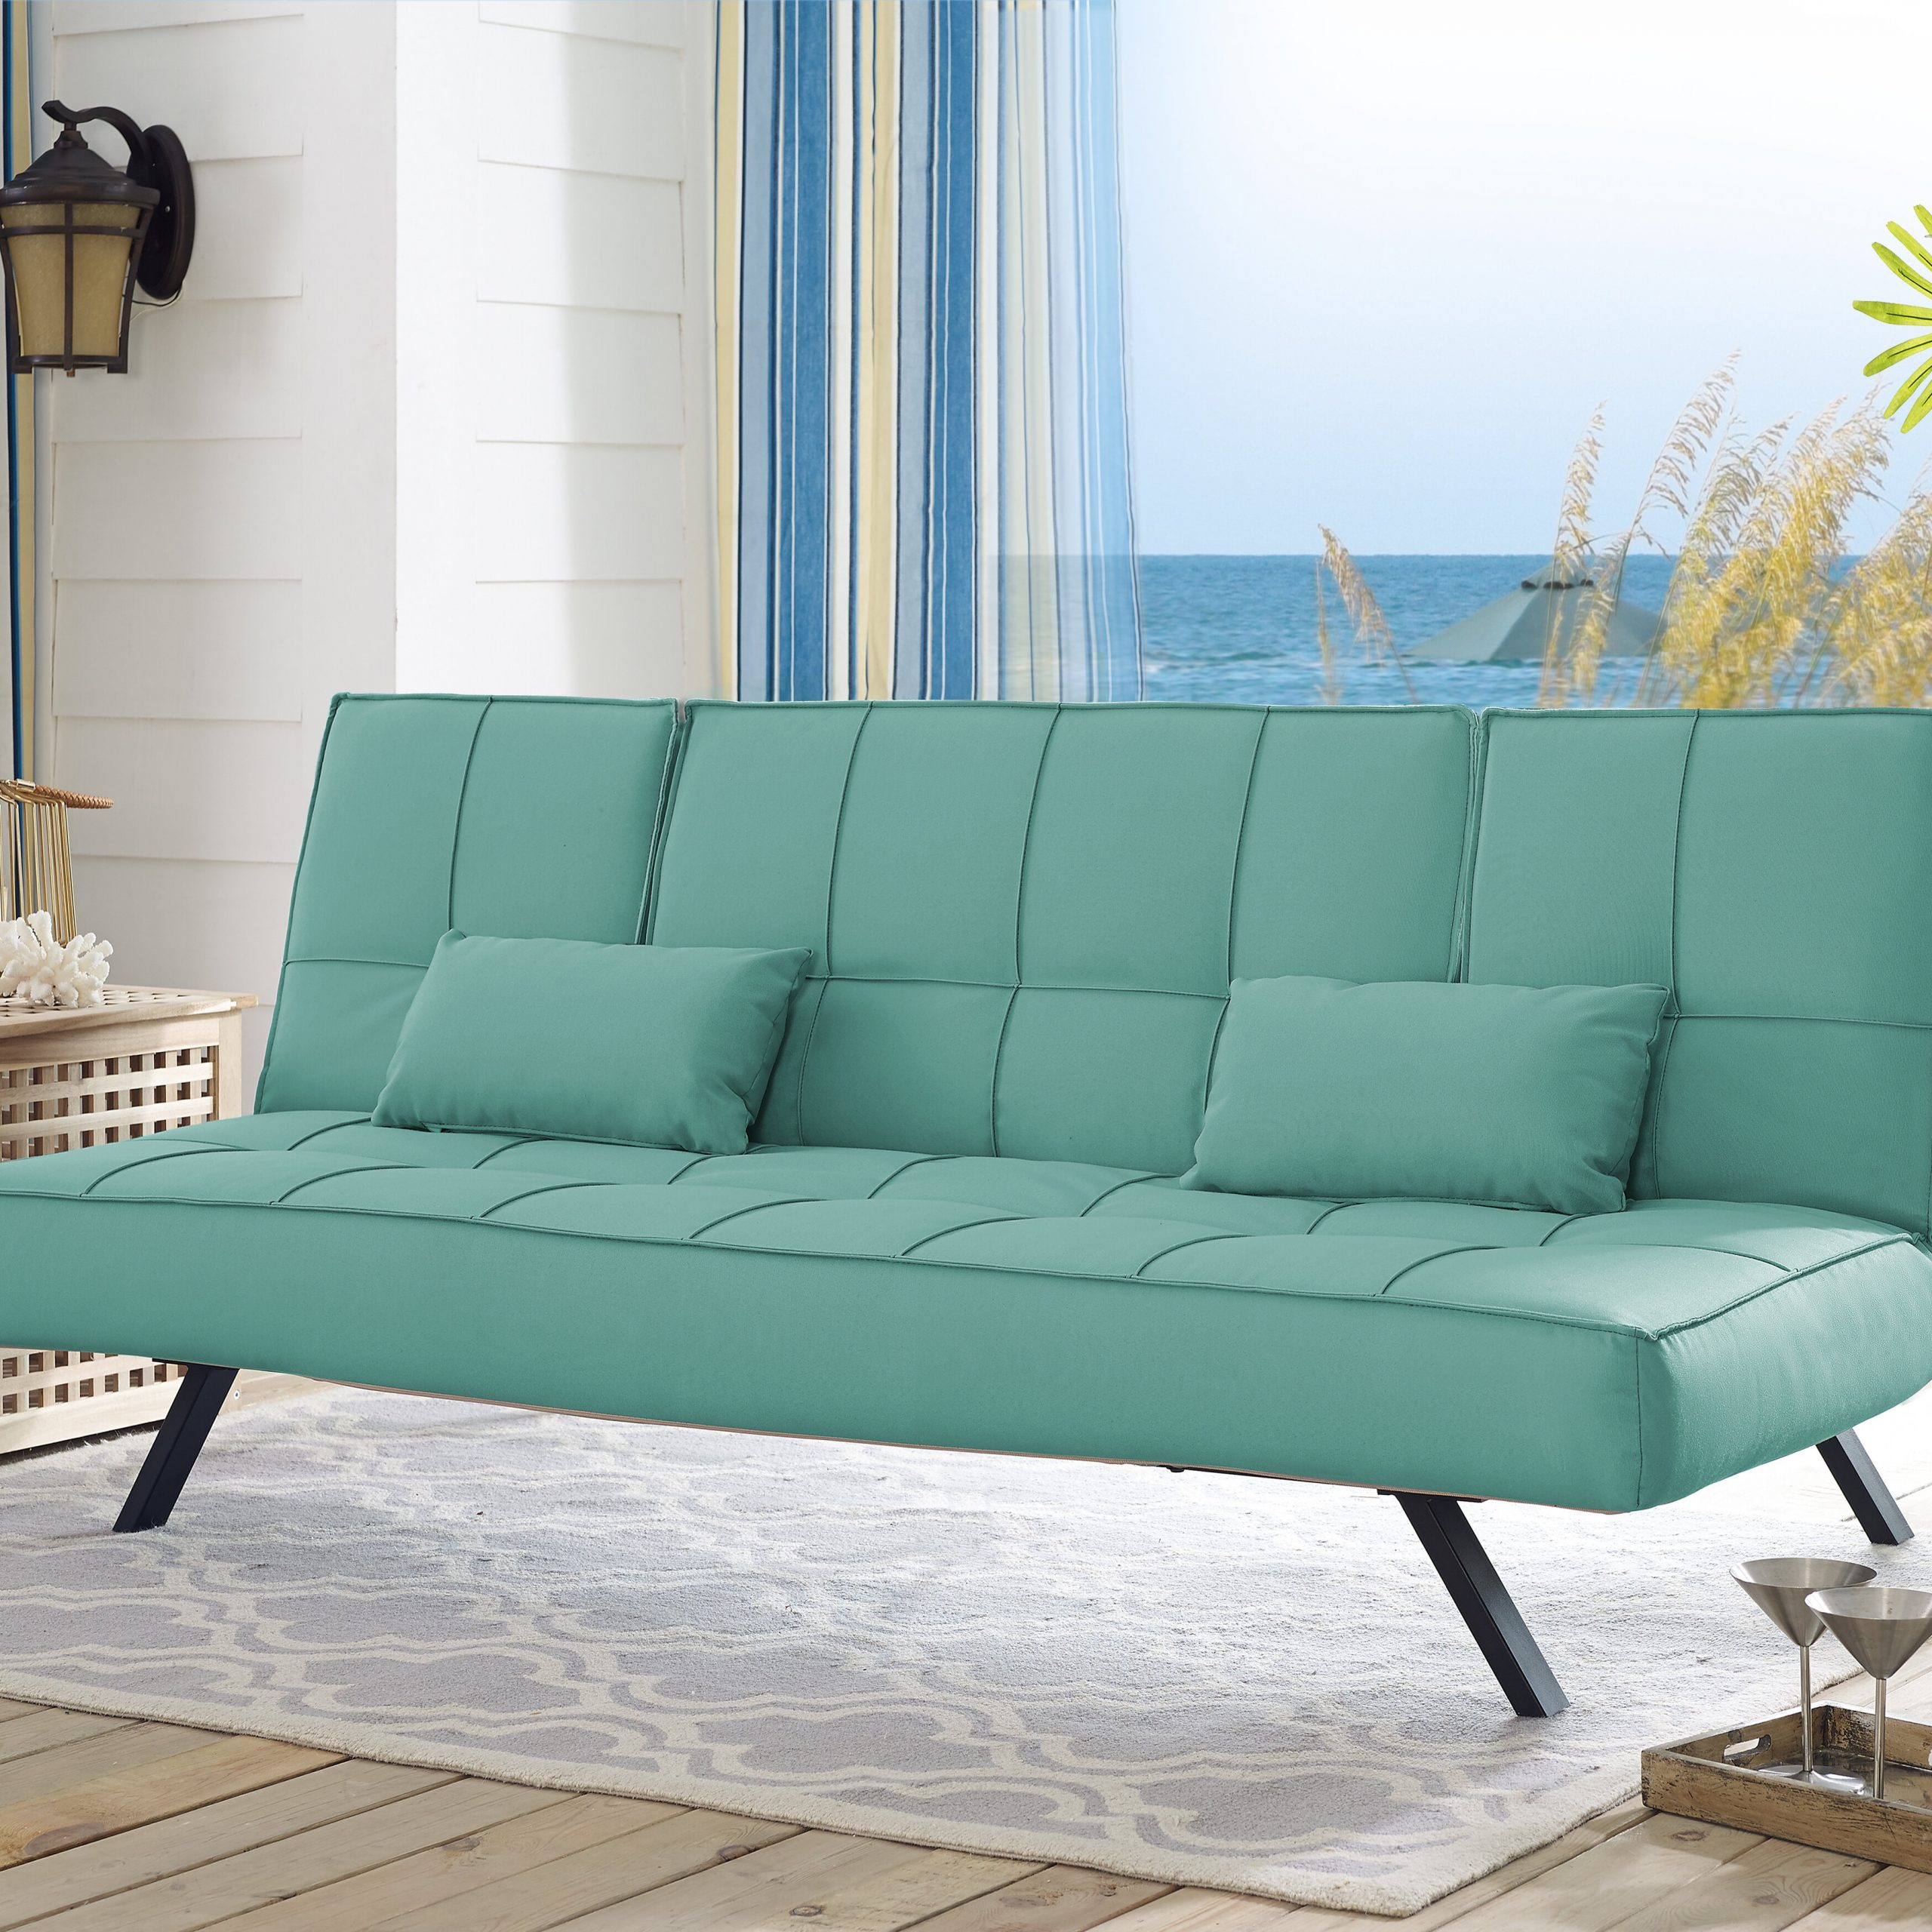 Repp Patio Sofas With Cushion Throughout Favorite Serta Futons Patio Sofa With Cushions (View 7 of 25)